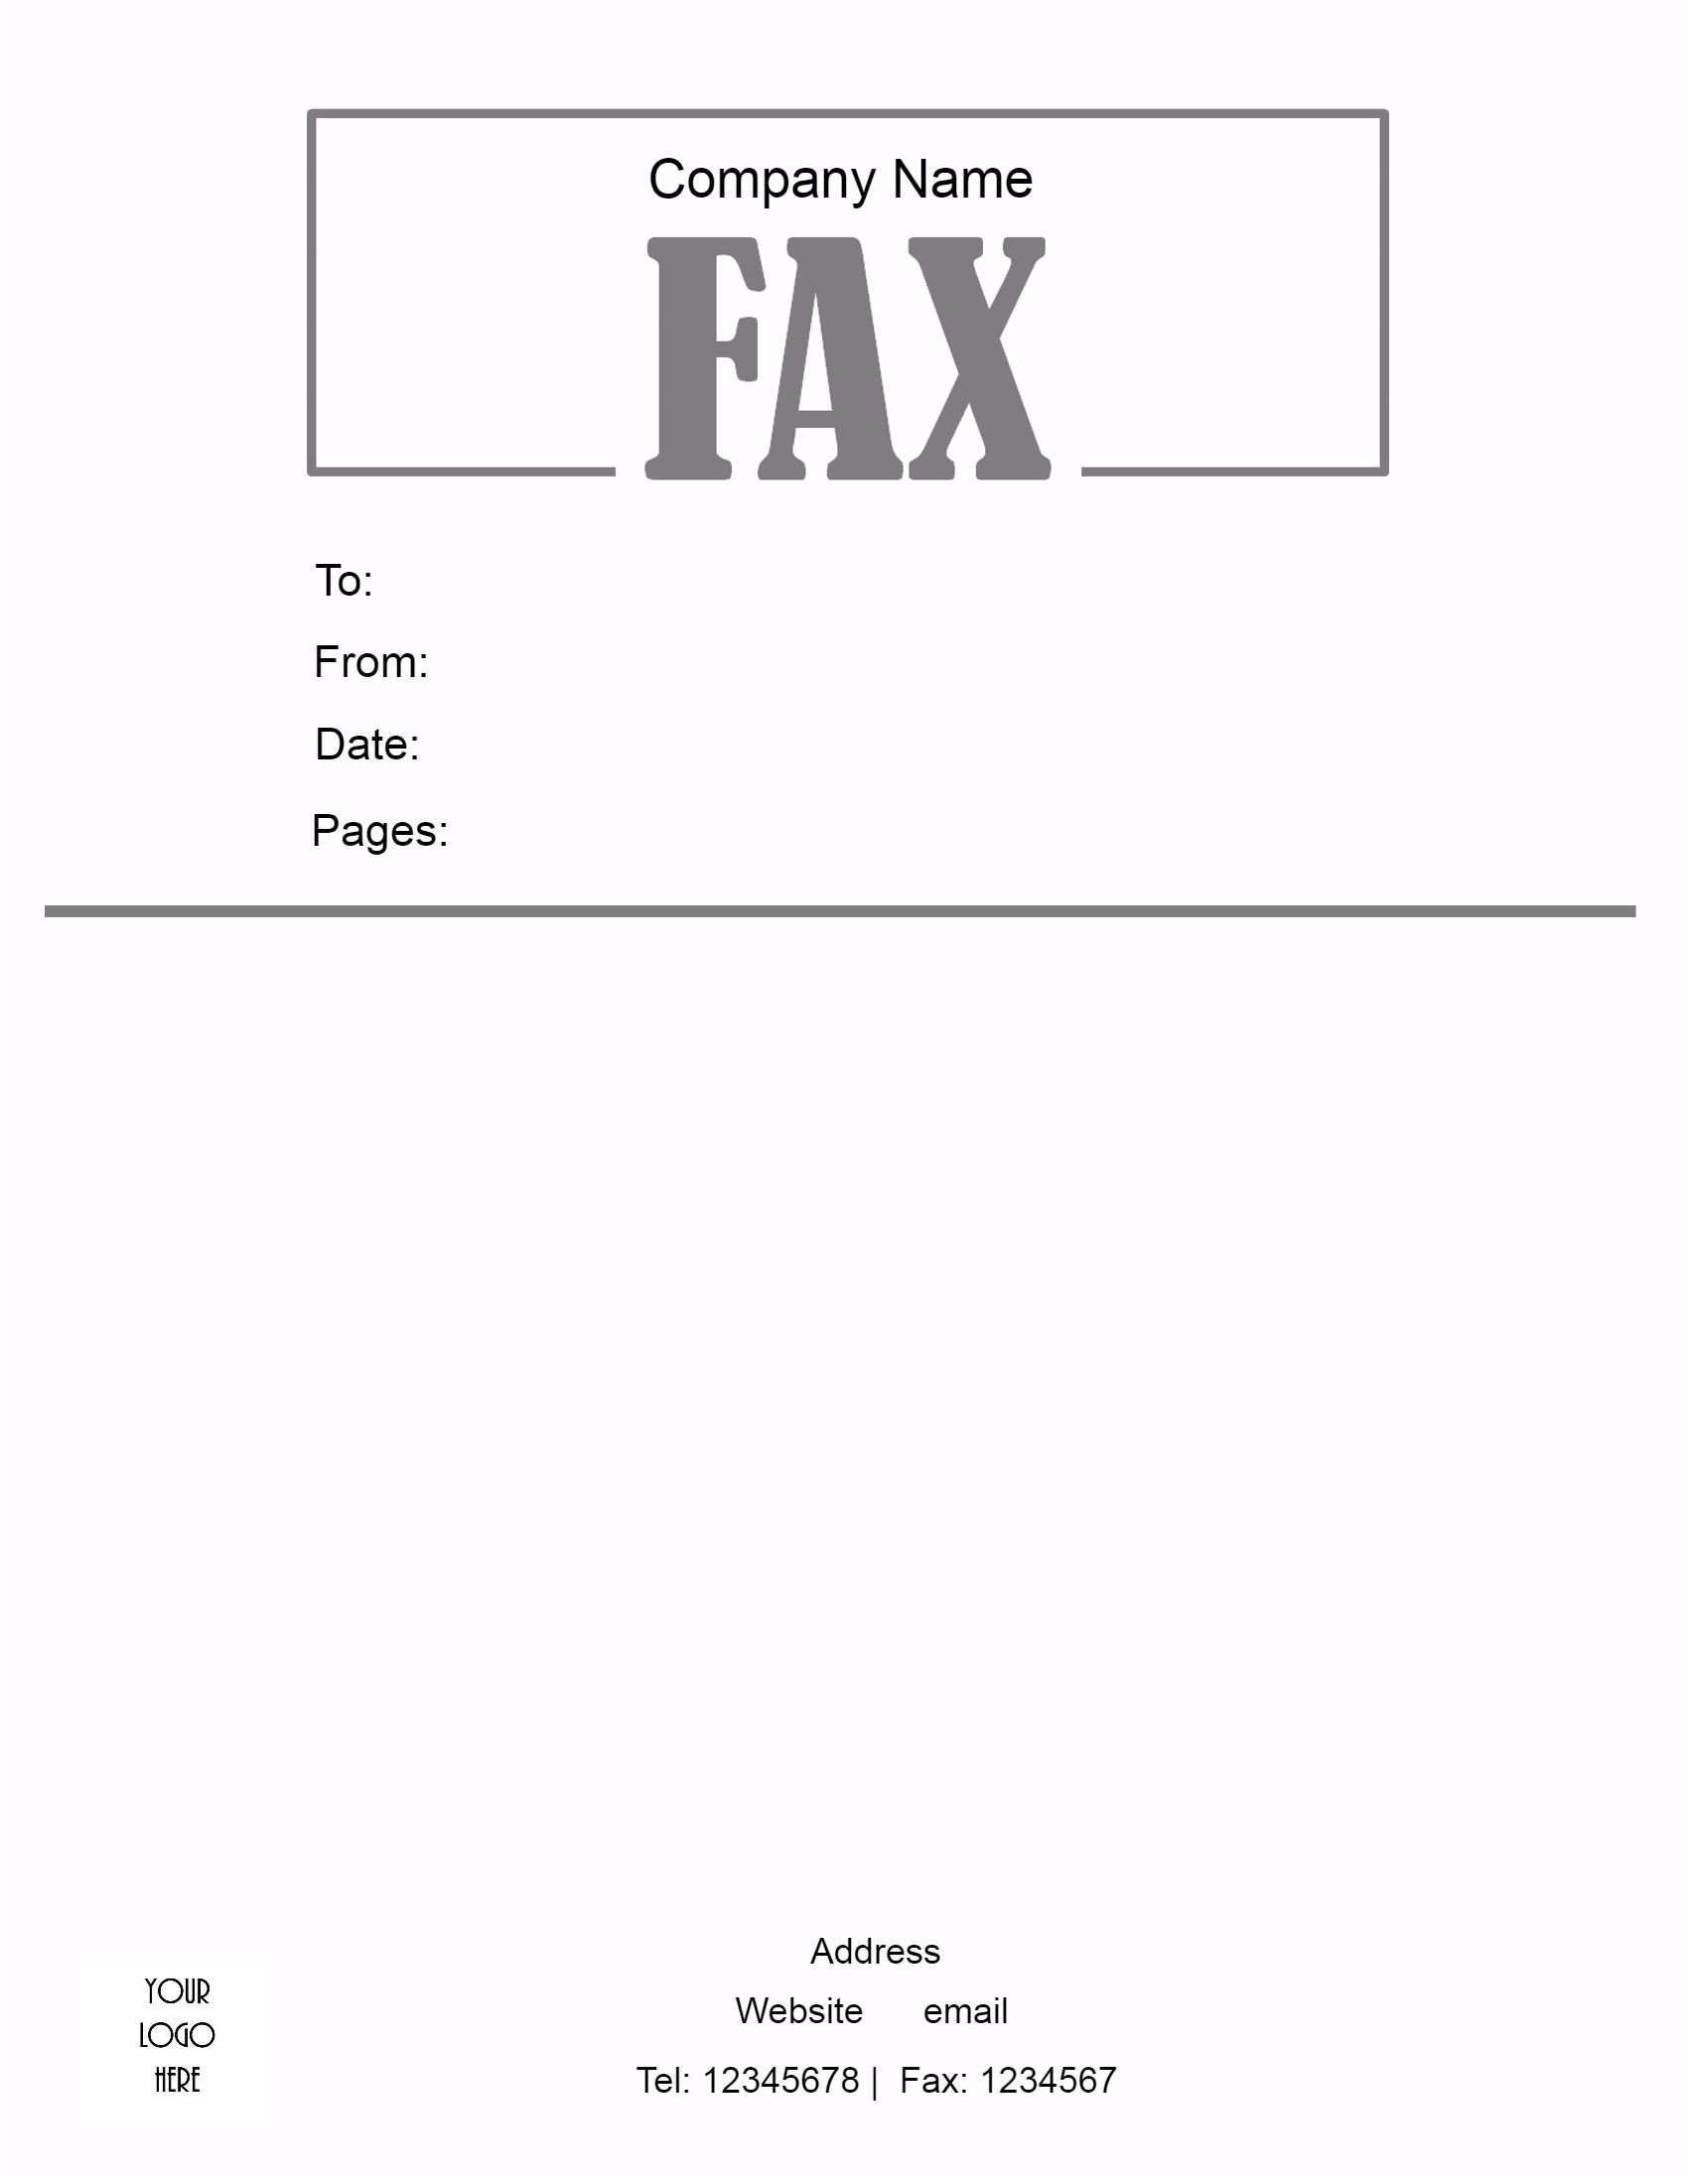 Free Fax Cover Sheet. Printable Fax Cover Sheet